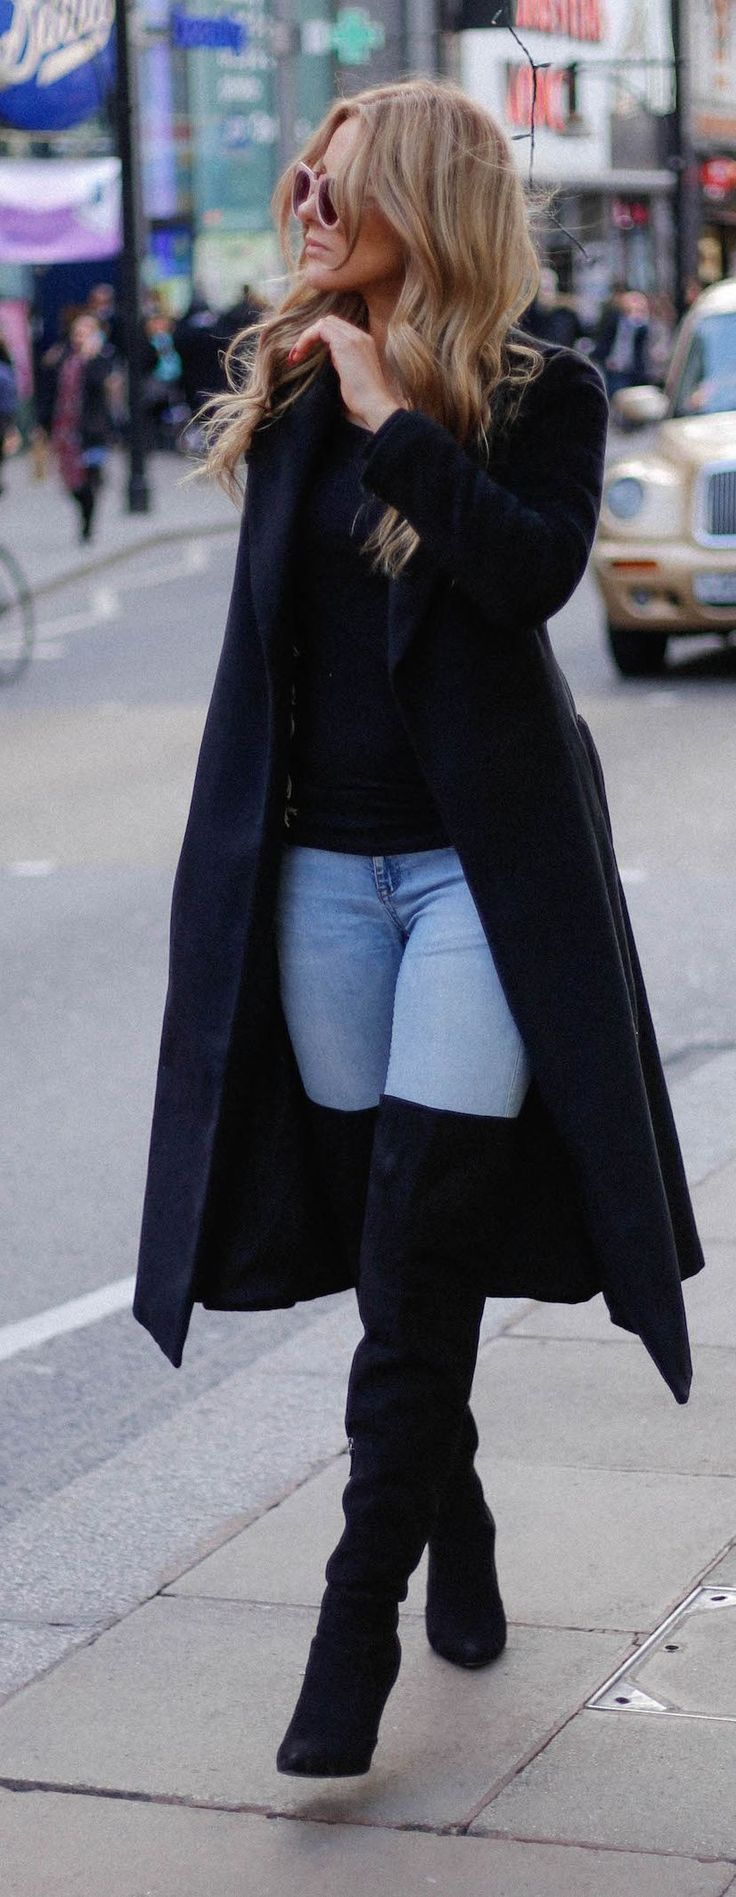 Long Black Coat + Black Thigh Boots